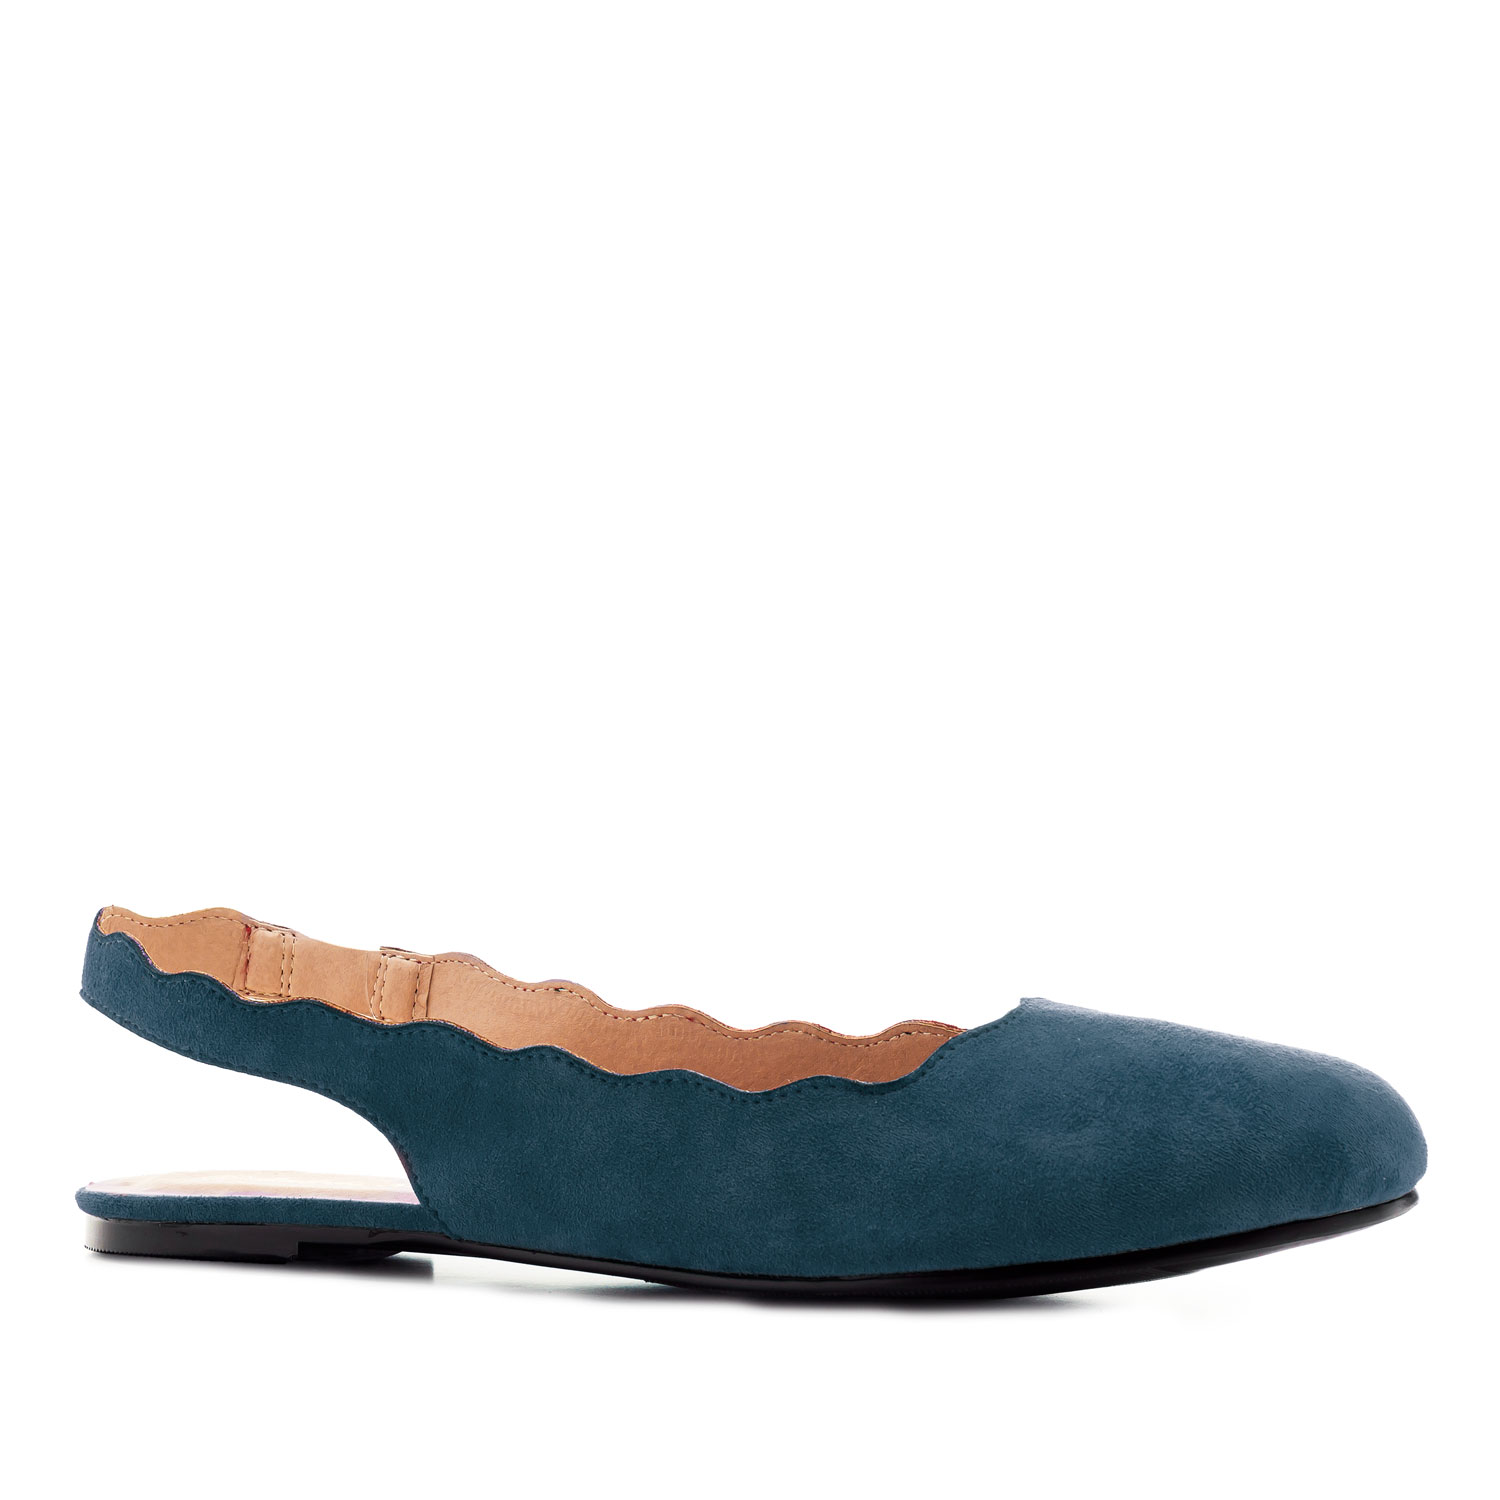 Wavy Slingback Flats in Blue Suede